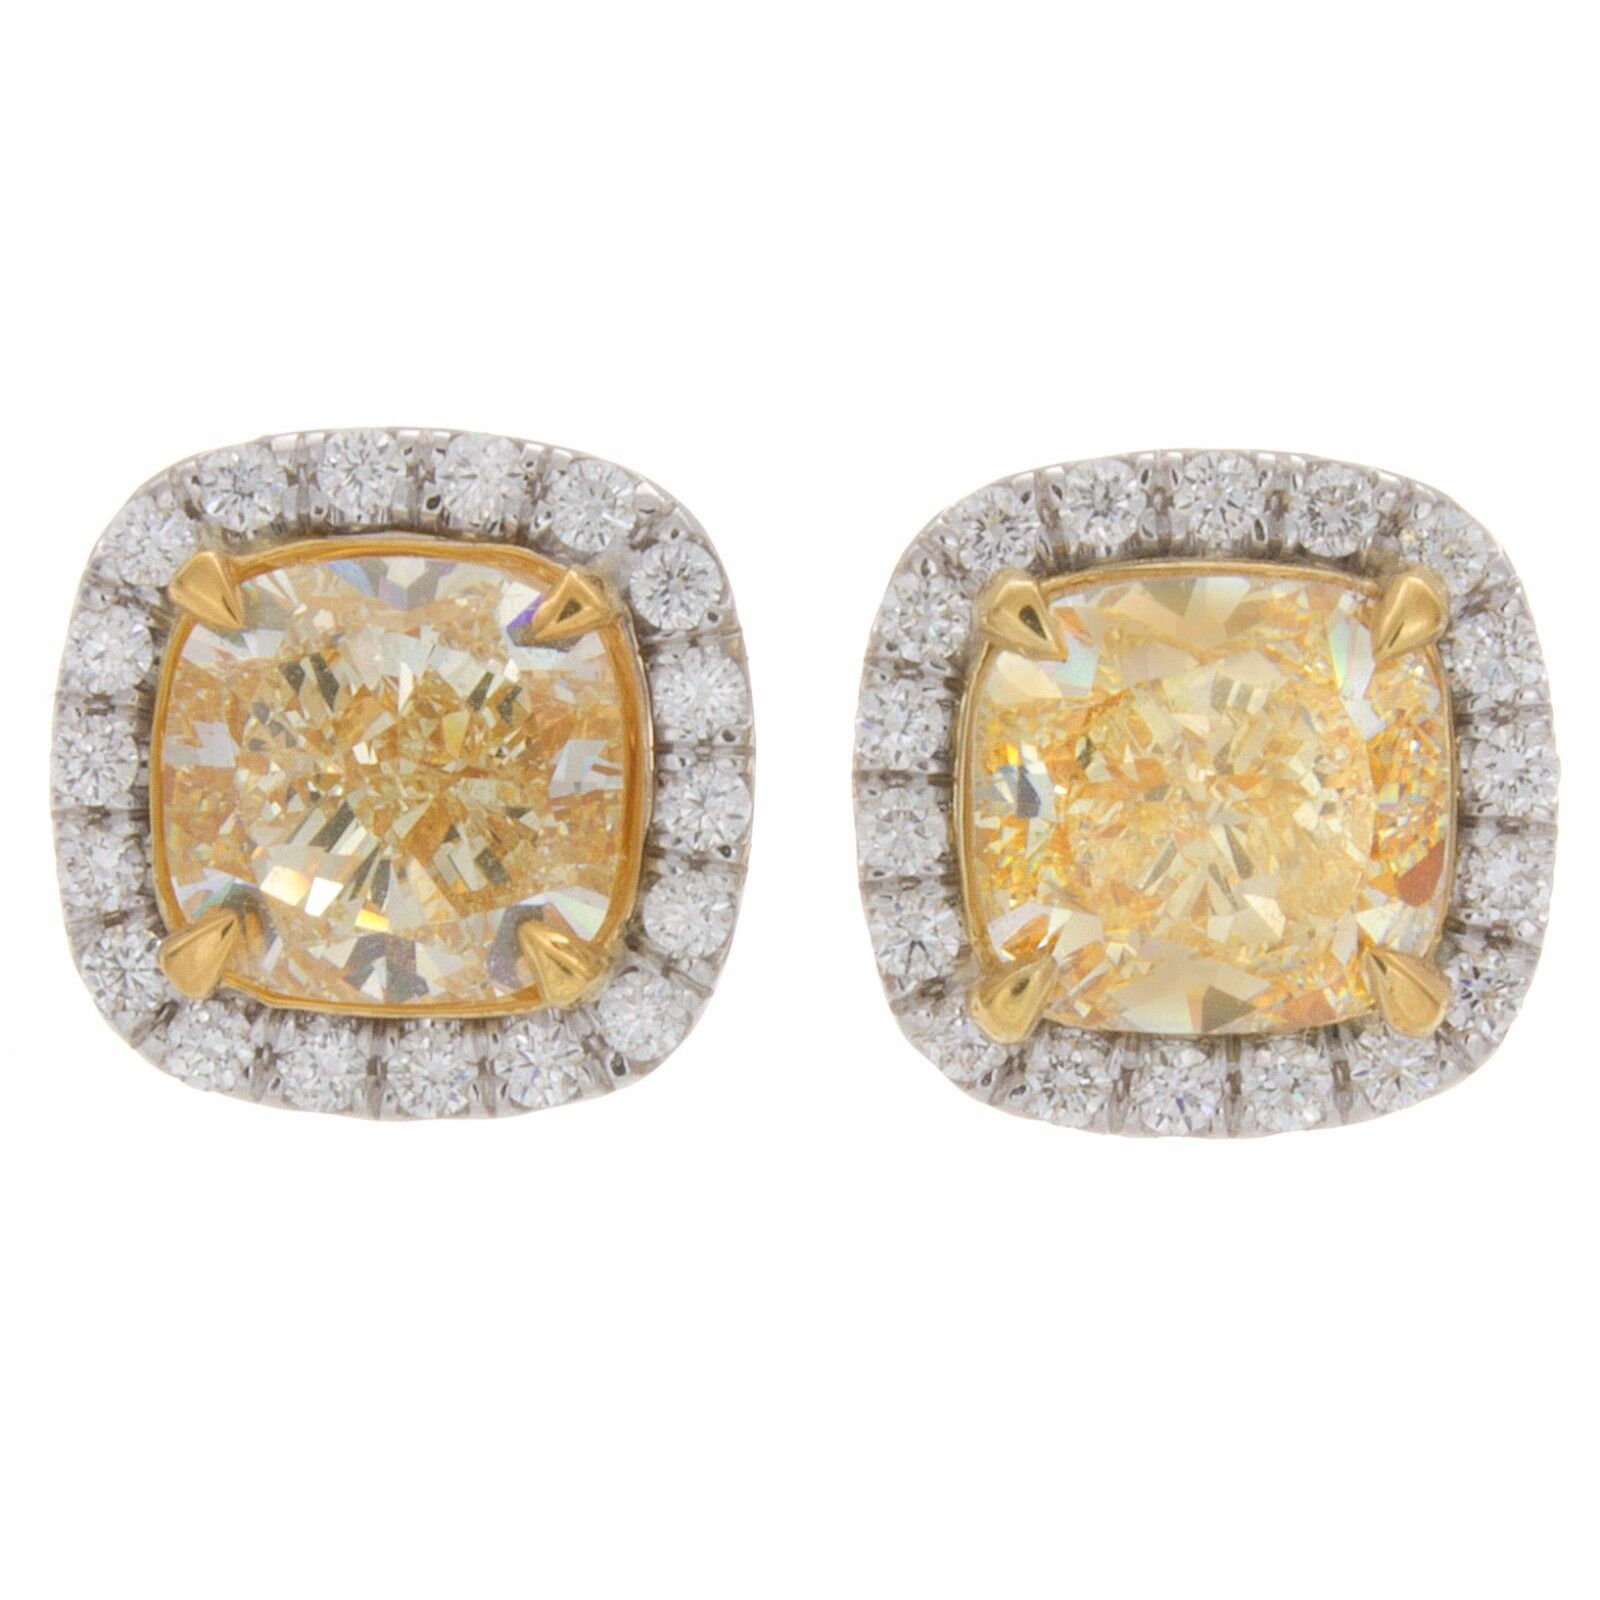 4.35ct Fancy Yellow Cushion Cut Pavé Halo Diamond Earrings